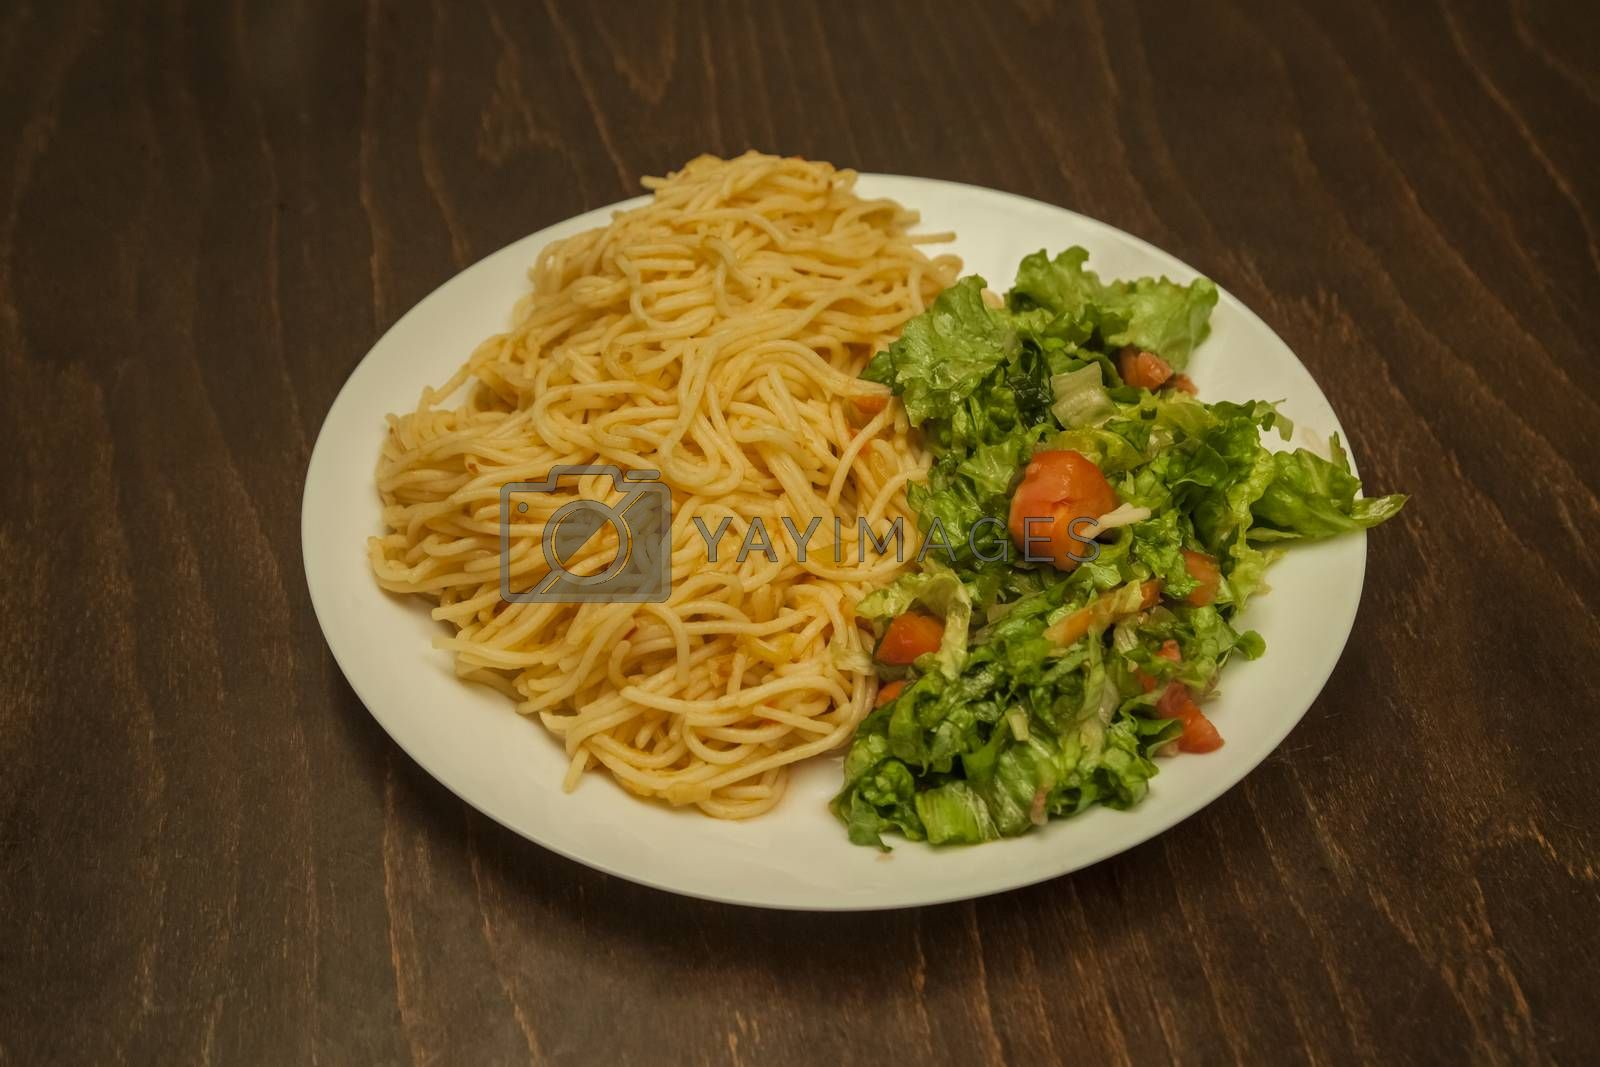 A serving of spaghetti with red sauce and salad.